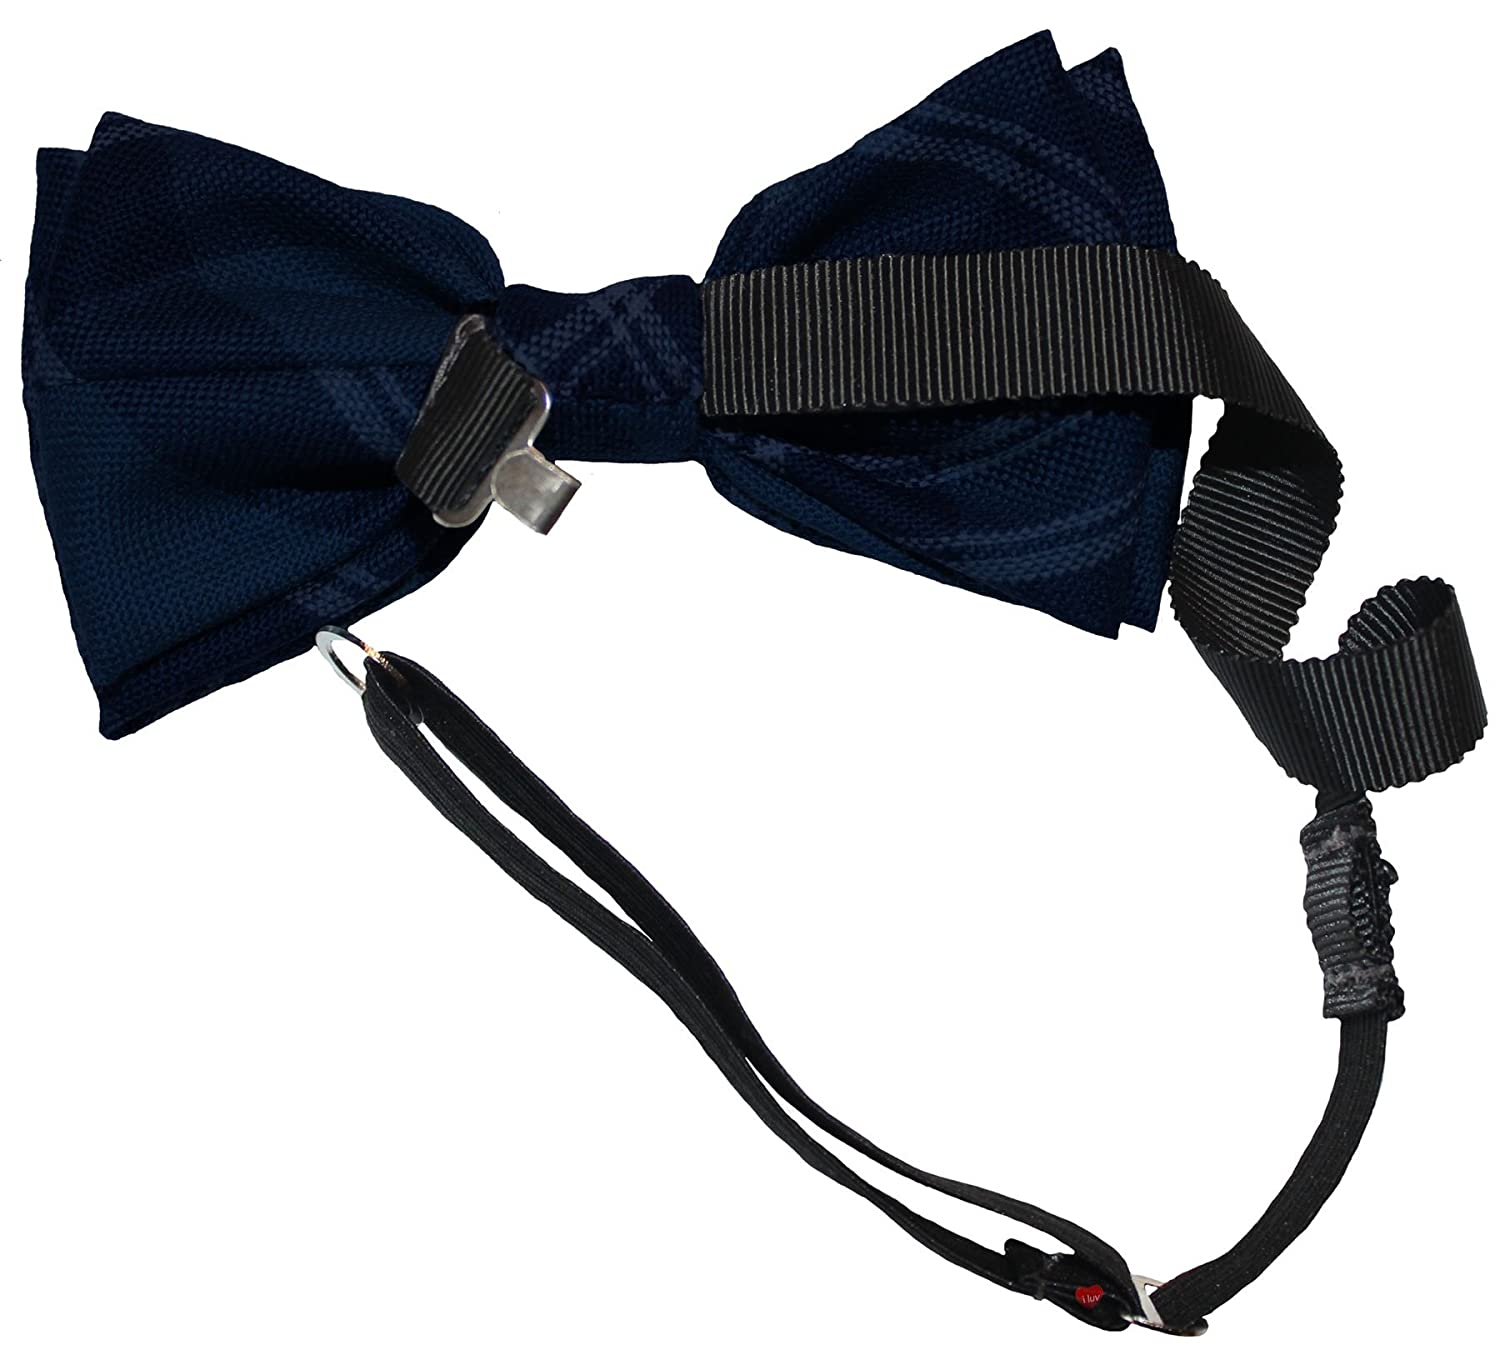 Mens Bow Tie Soft Wool Woven And Made in Scotland in Kerr Ancient Tartan Adjustable Strap for easy fastening